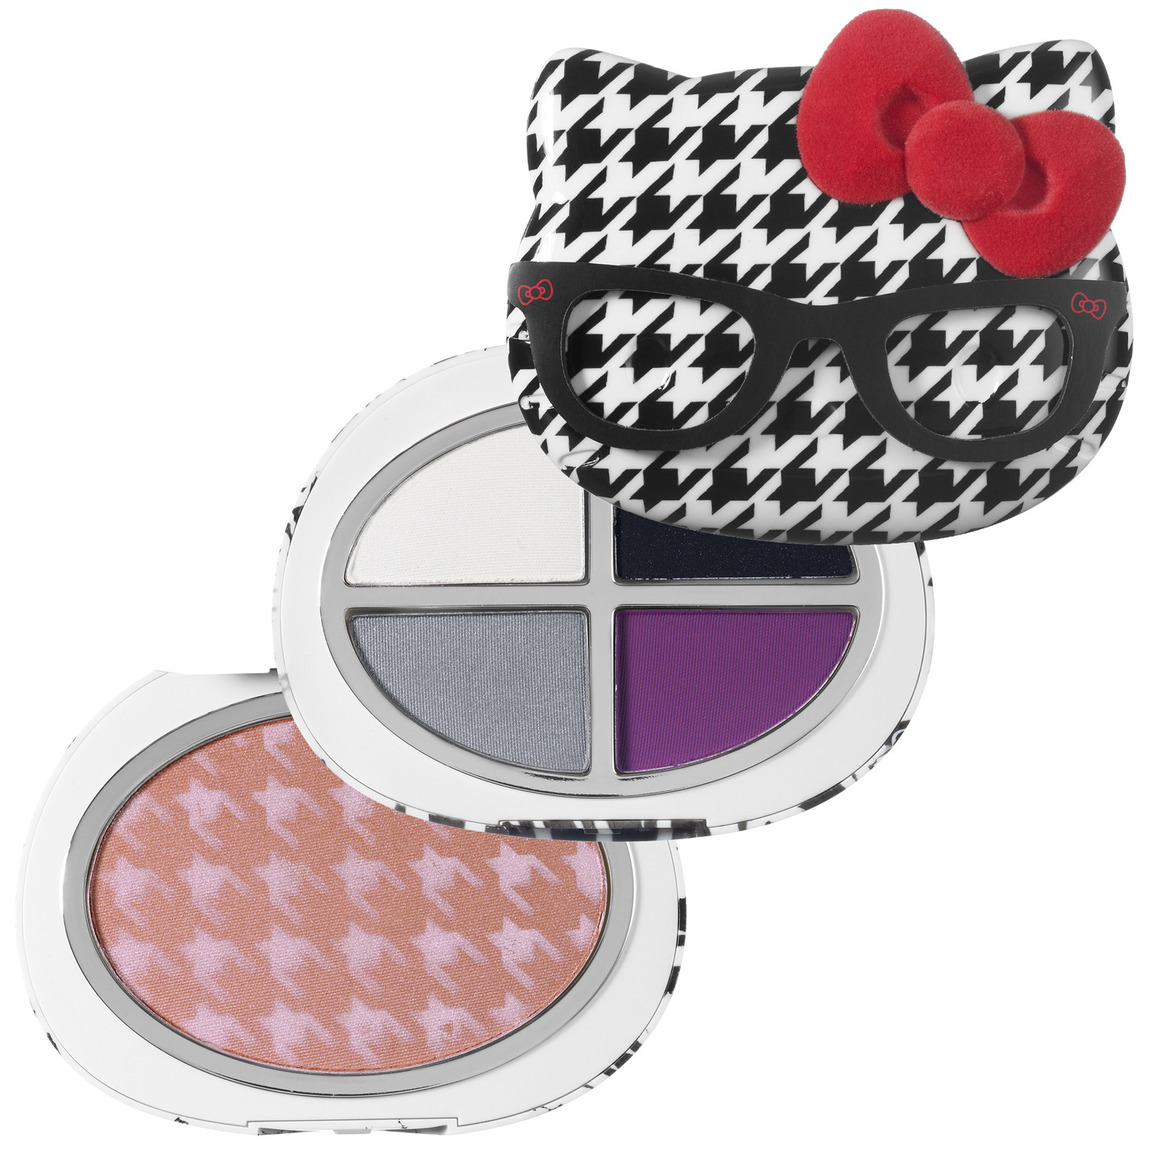 Hello Kitty Head of the Class Fall 2012 Makeup Collection